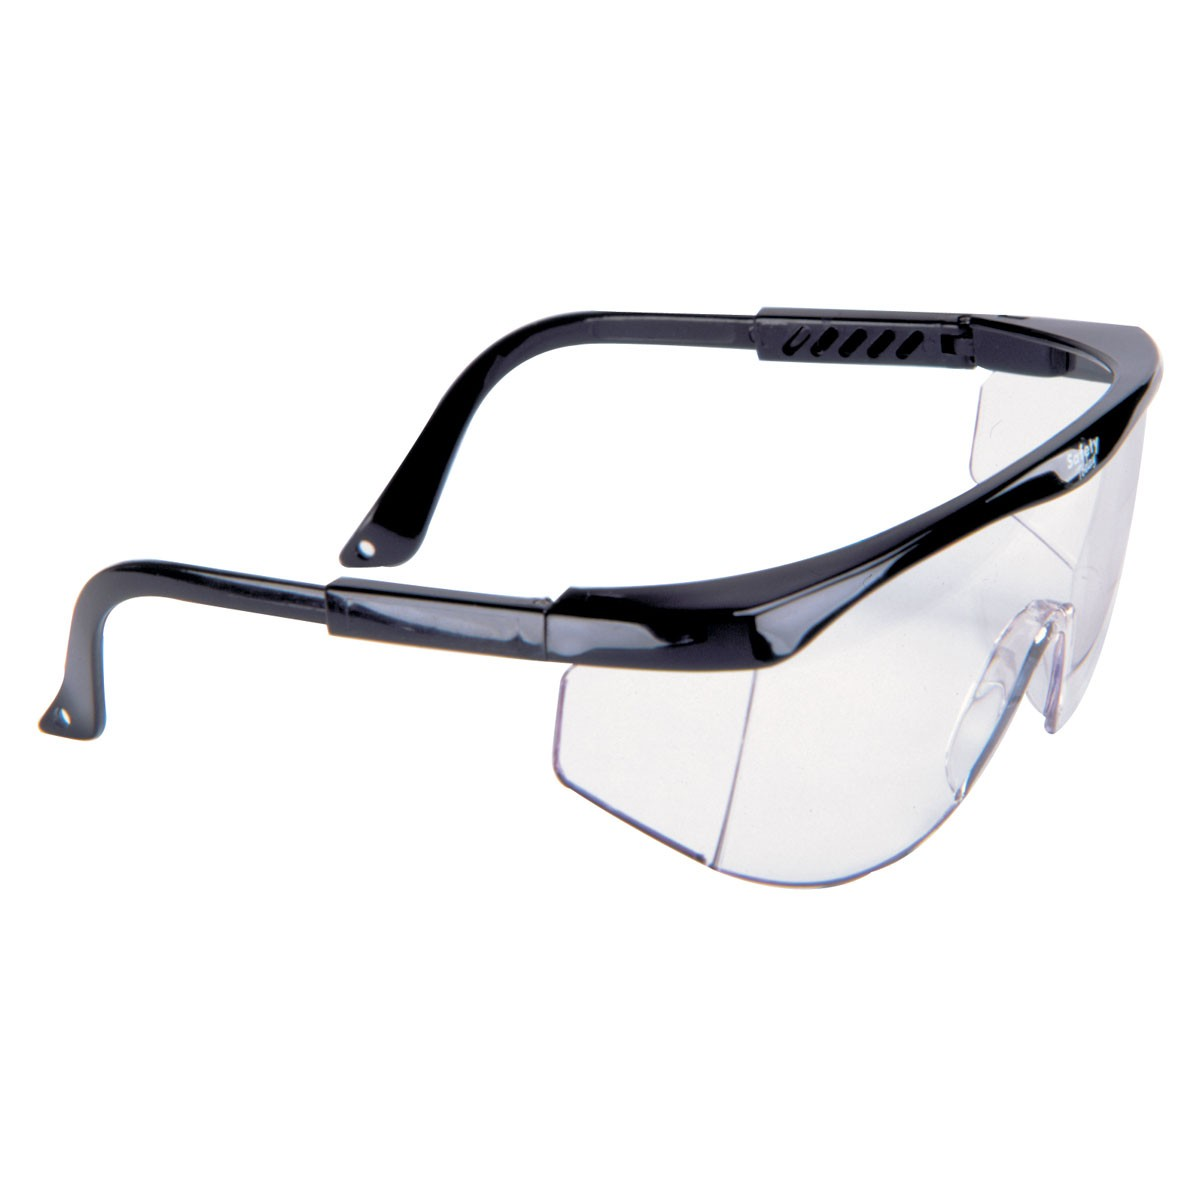 Safety Goggles Nairobi Safety Shop Limited